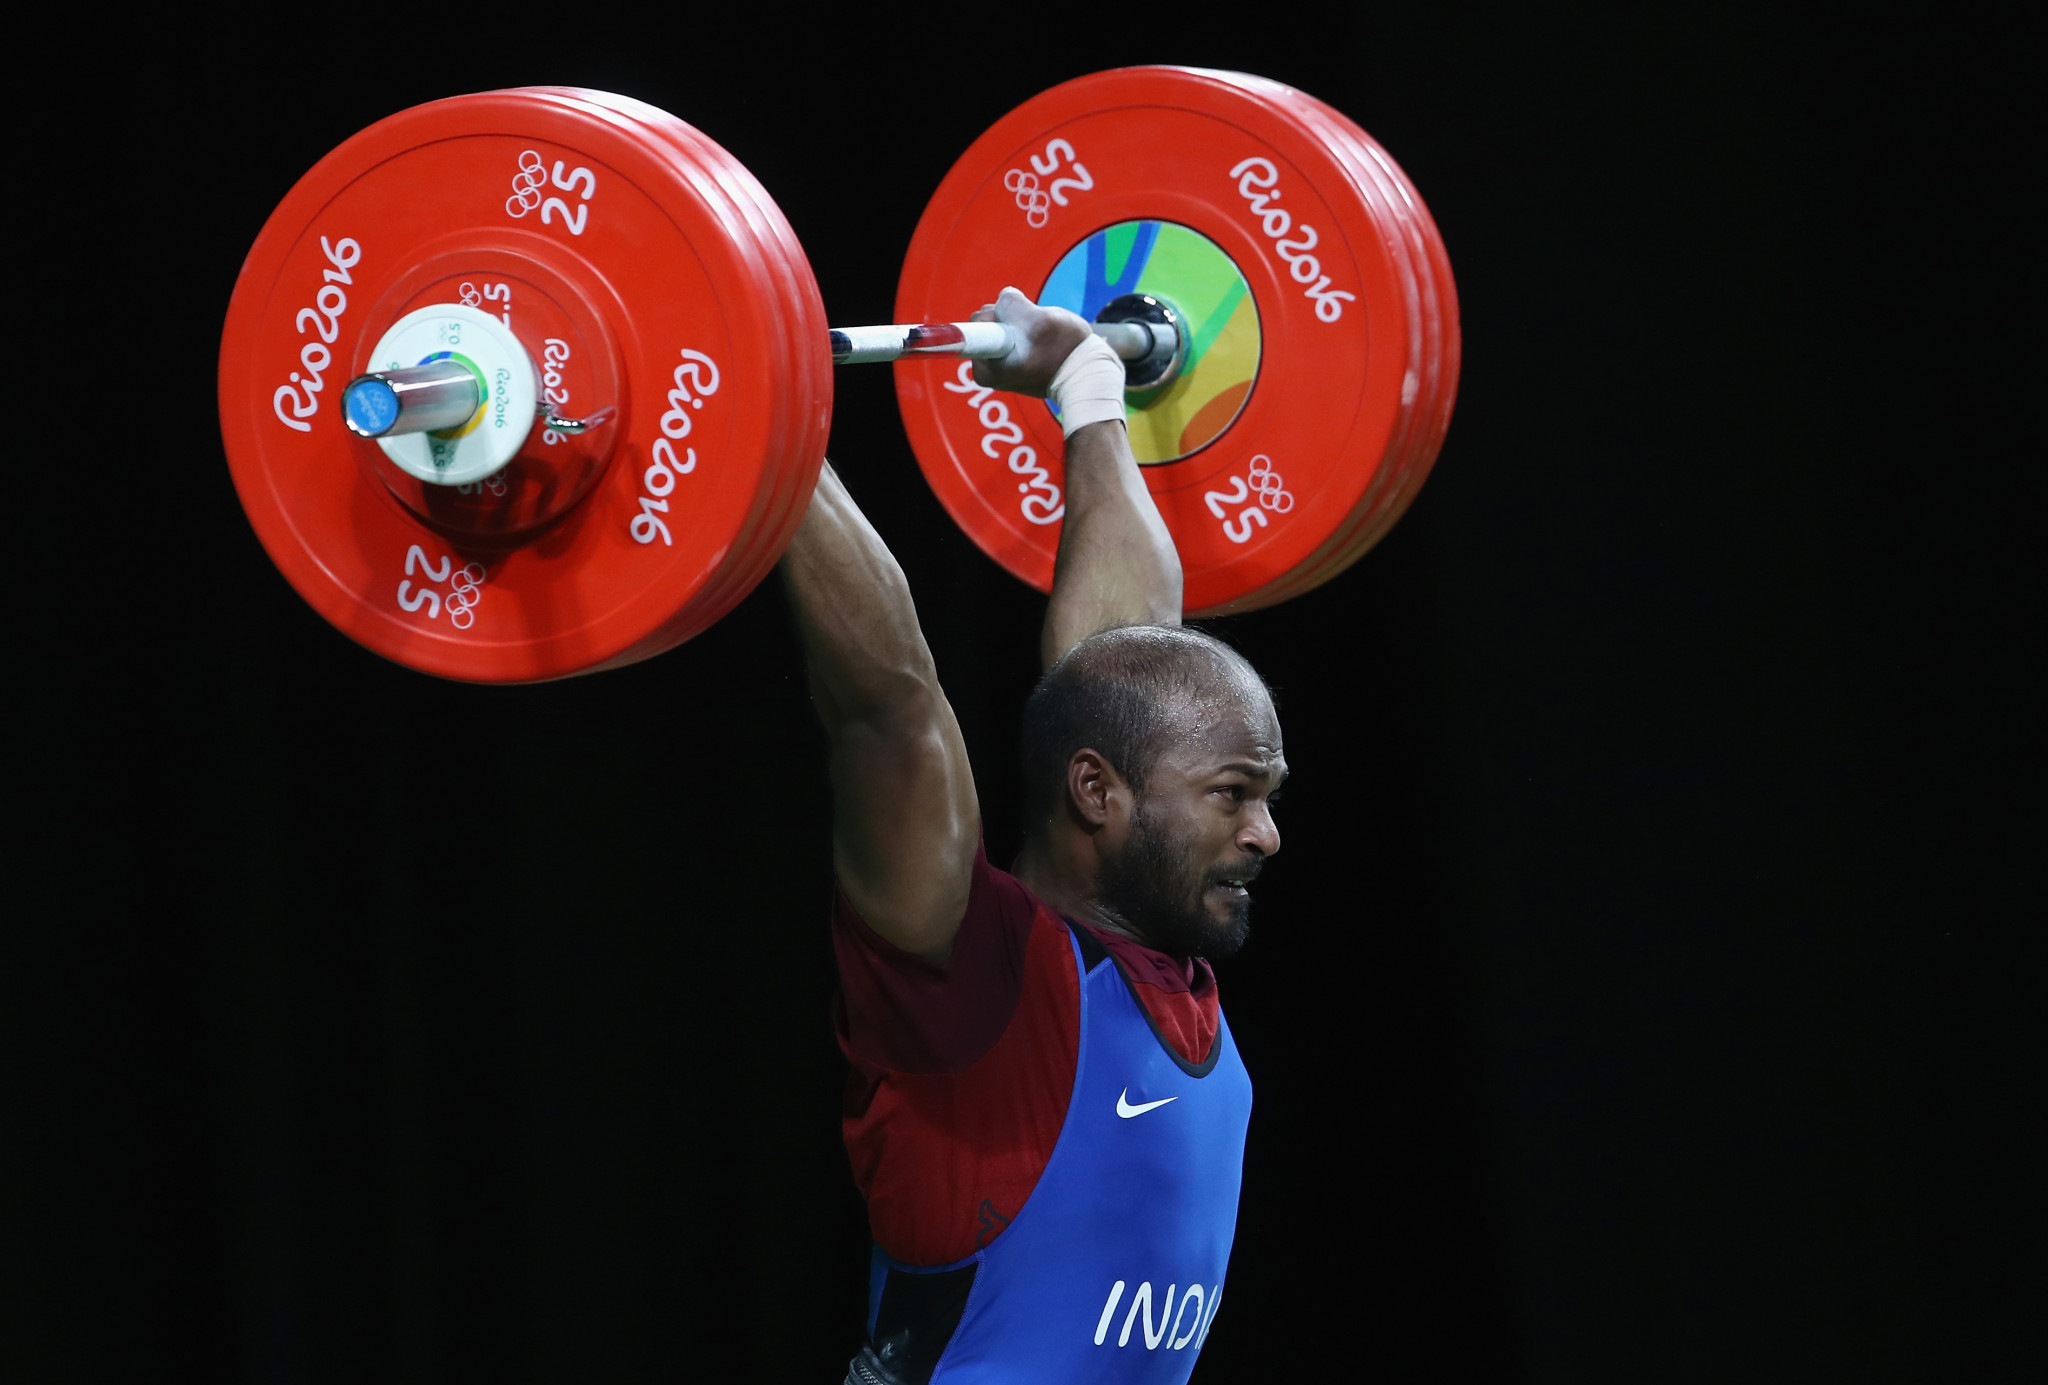 Glasgow 2014 champion continues Indian success at Commonwealth Weightlifting Championships